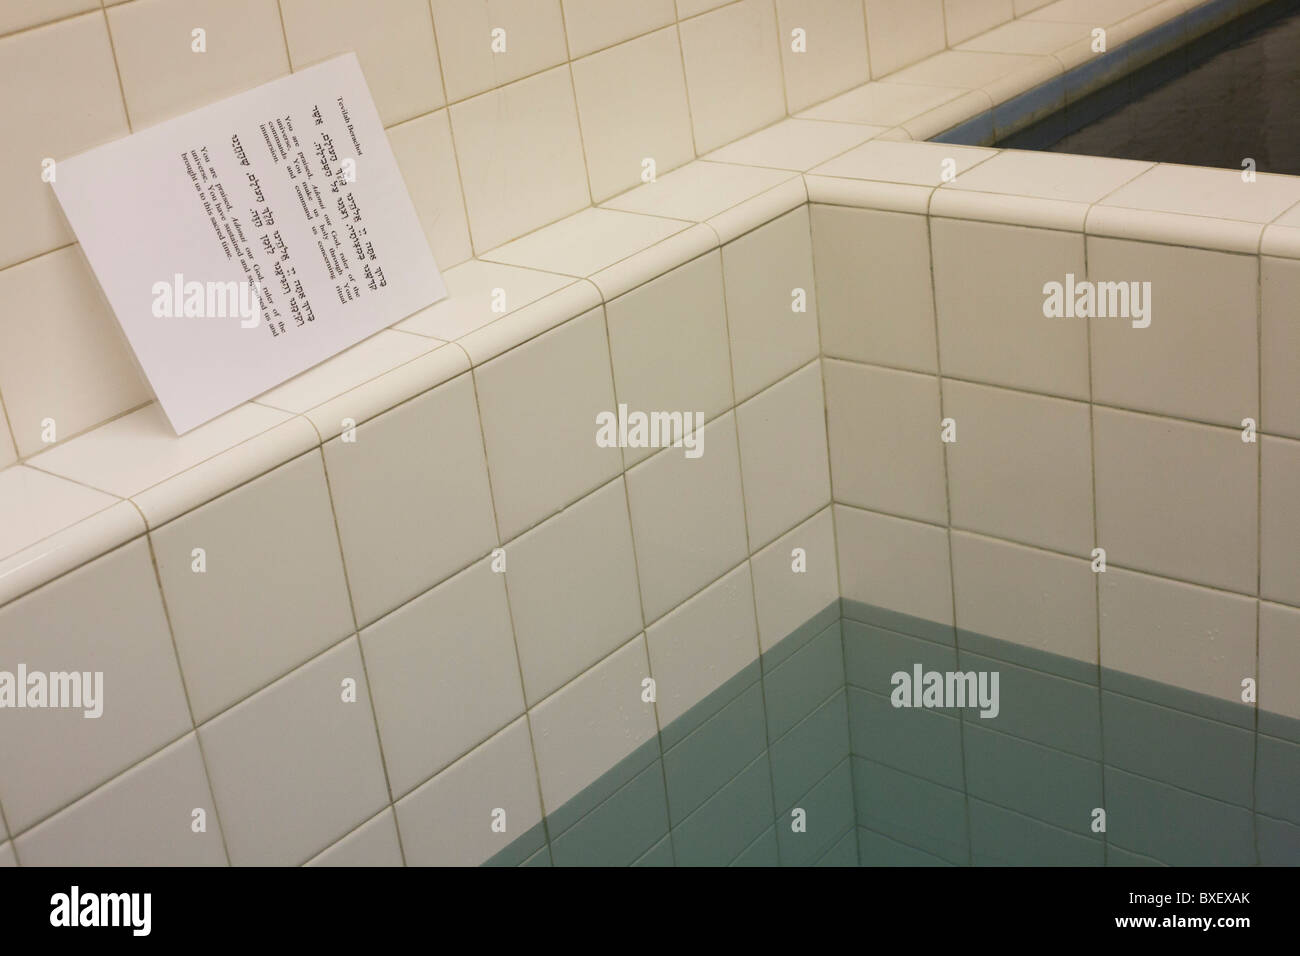 The Jewish faith Mikveh baths where recent converts to Judaism bathe in private, at the Sternberg Centre. London. Stock Photo